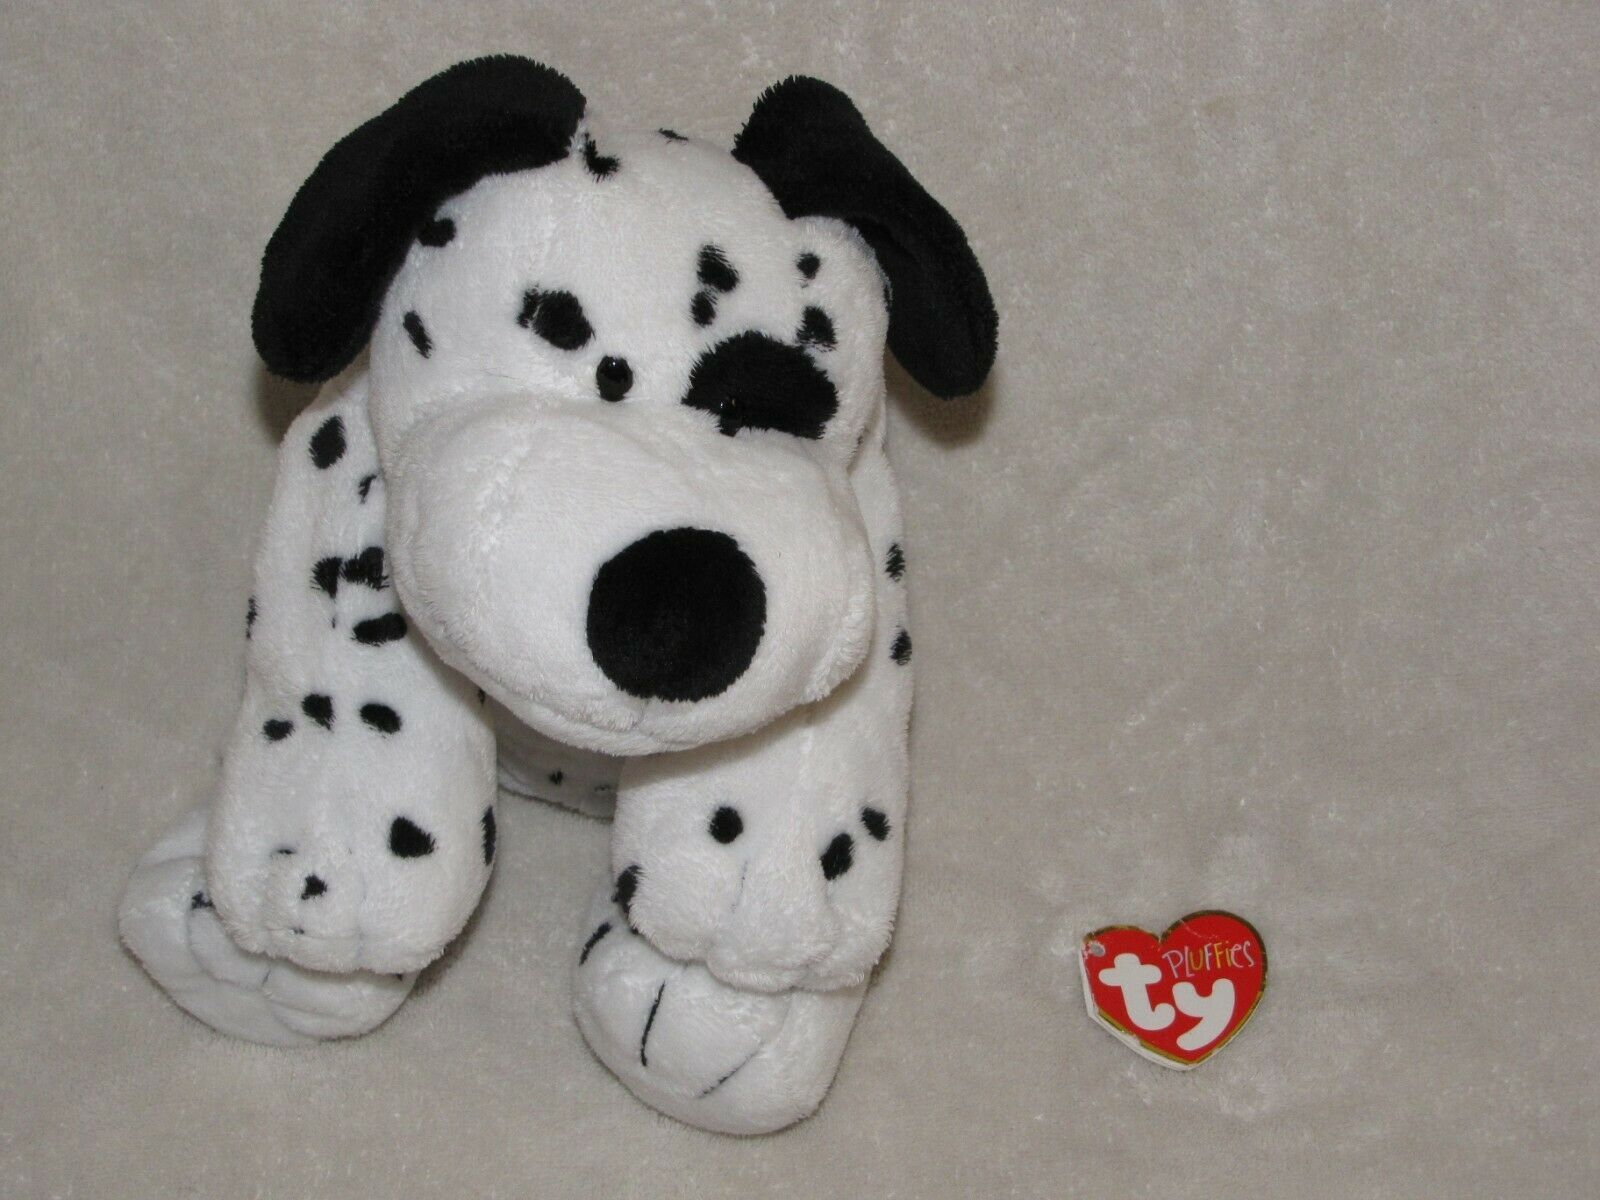 Primary image for Ty Pluffies DOTTERS The Dalmatian PUPPY Dog 2006 Plush BABY Beanie 2006 Plastic